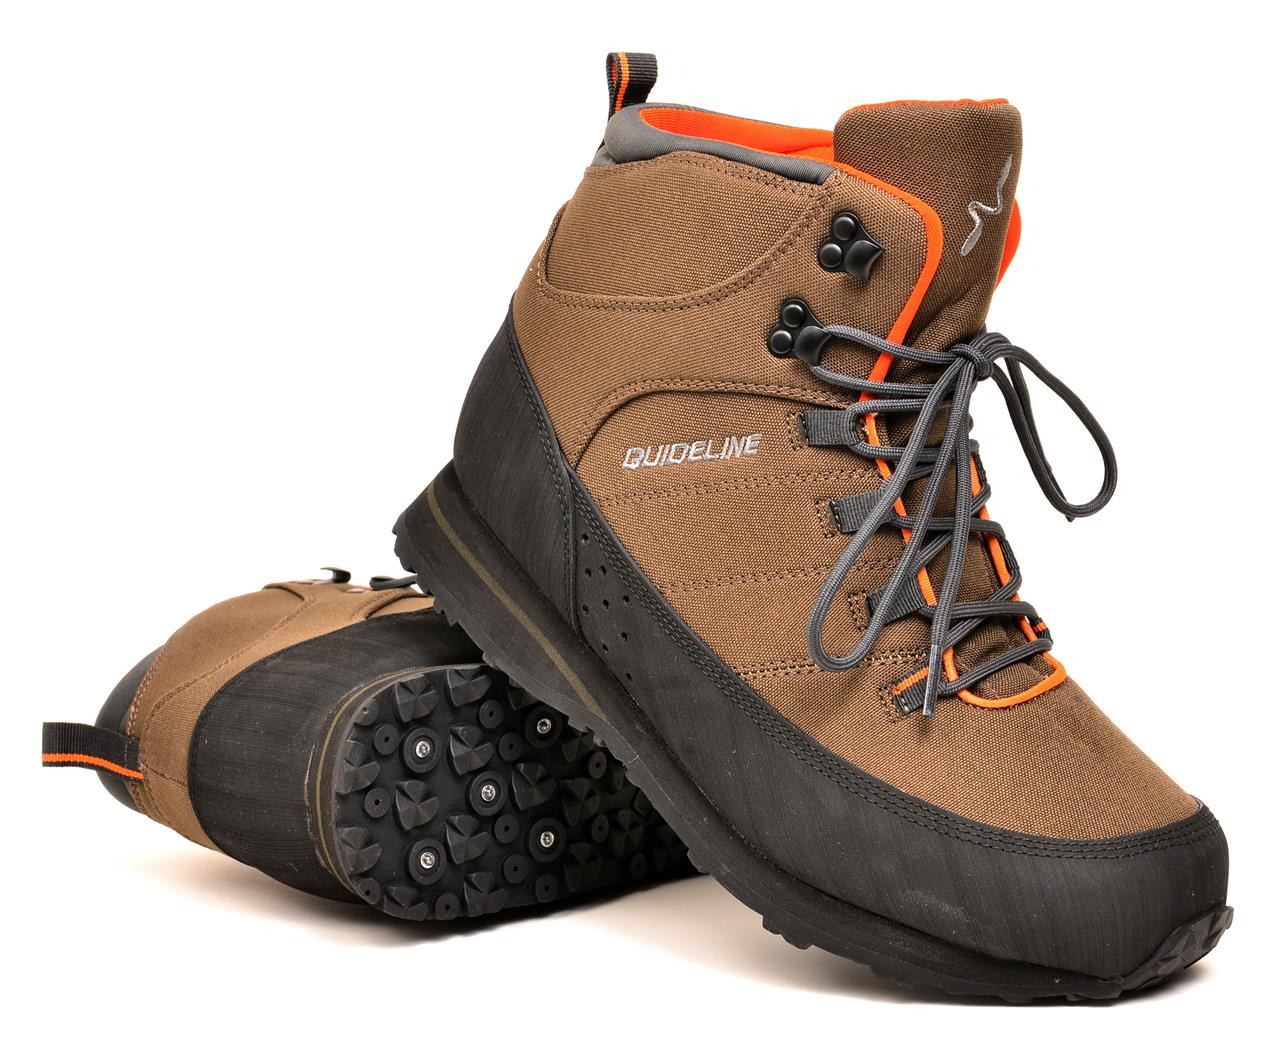 Chaussures de Wading Guideline Laxa 2.0 Traction